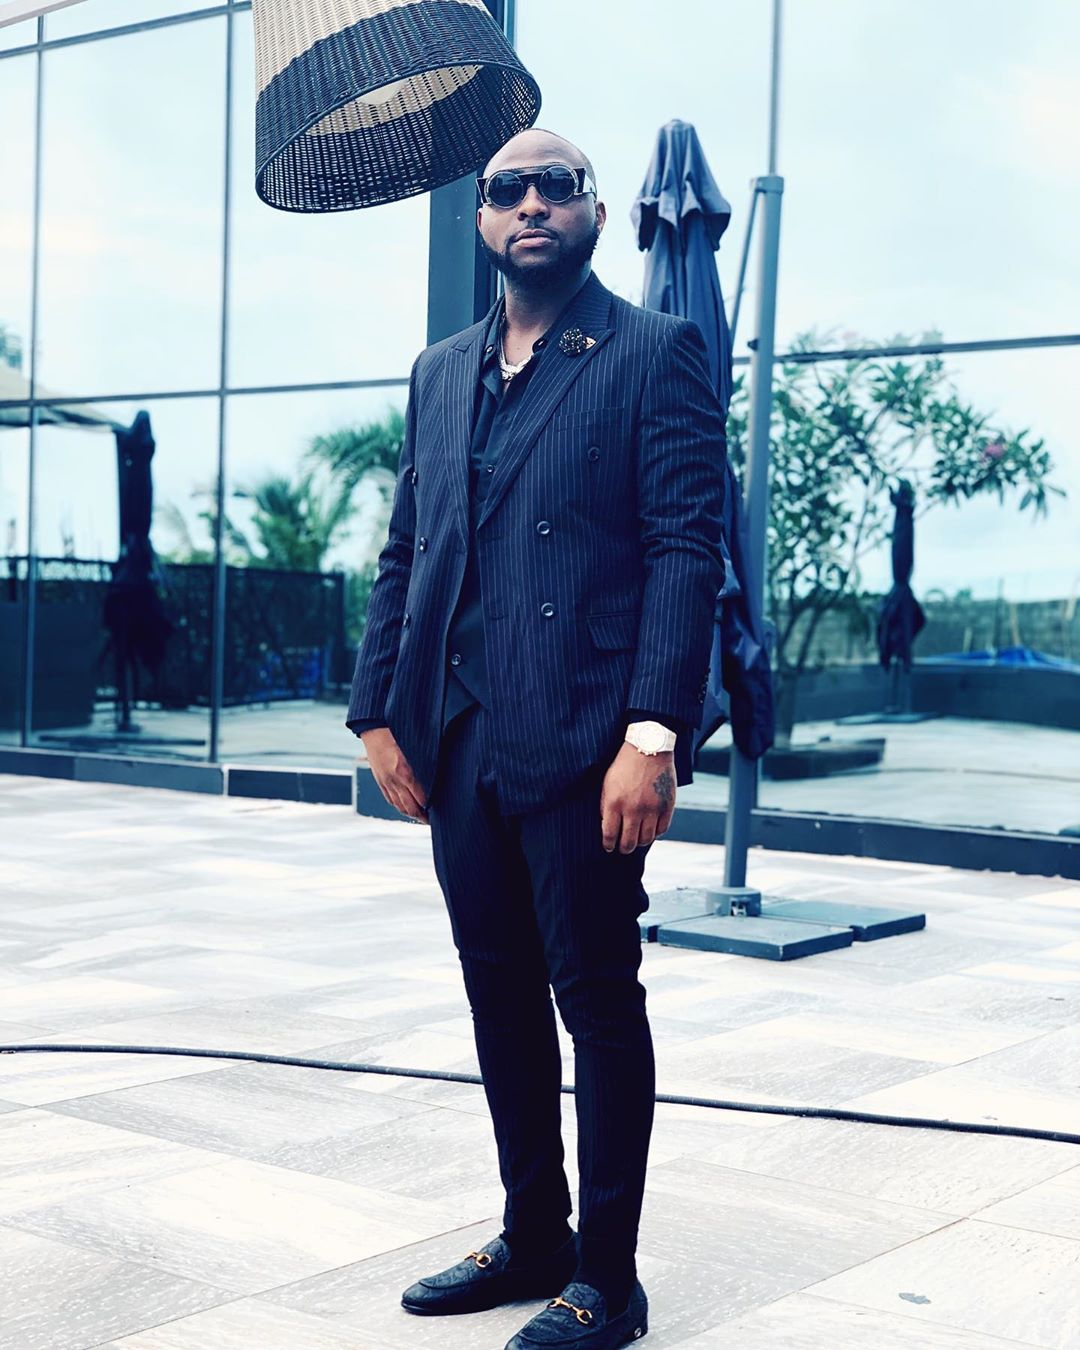 davido-african-men-male-celebrities-african-best-dresses-hottest-most-fashionable-stylish-style-rave-2020